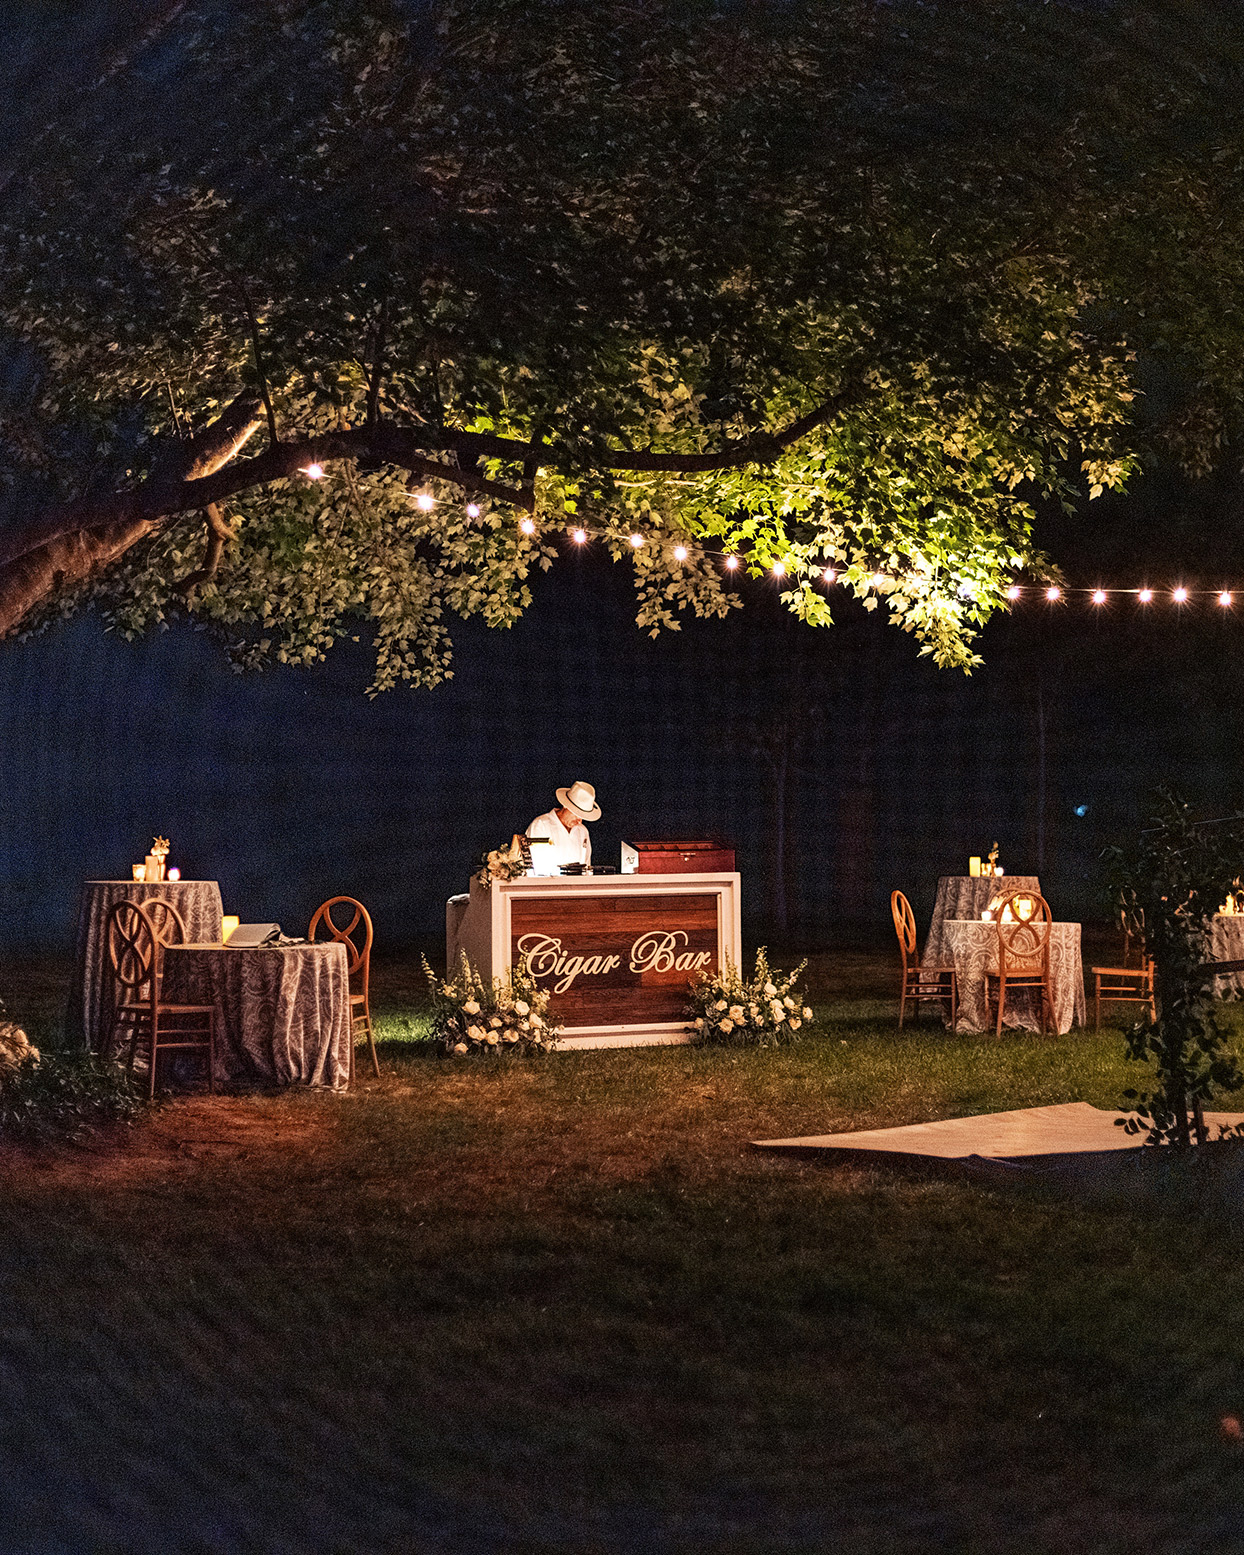 lauren chris wedding cigar bar lit under trees